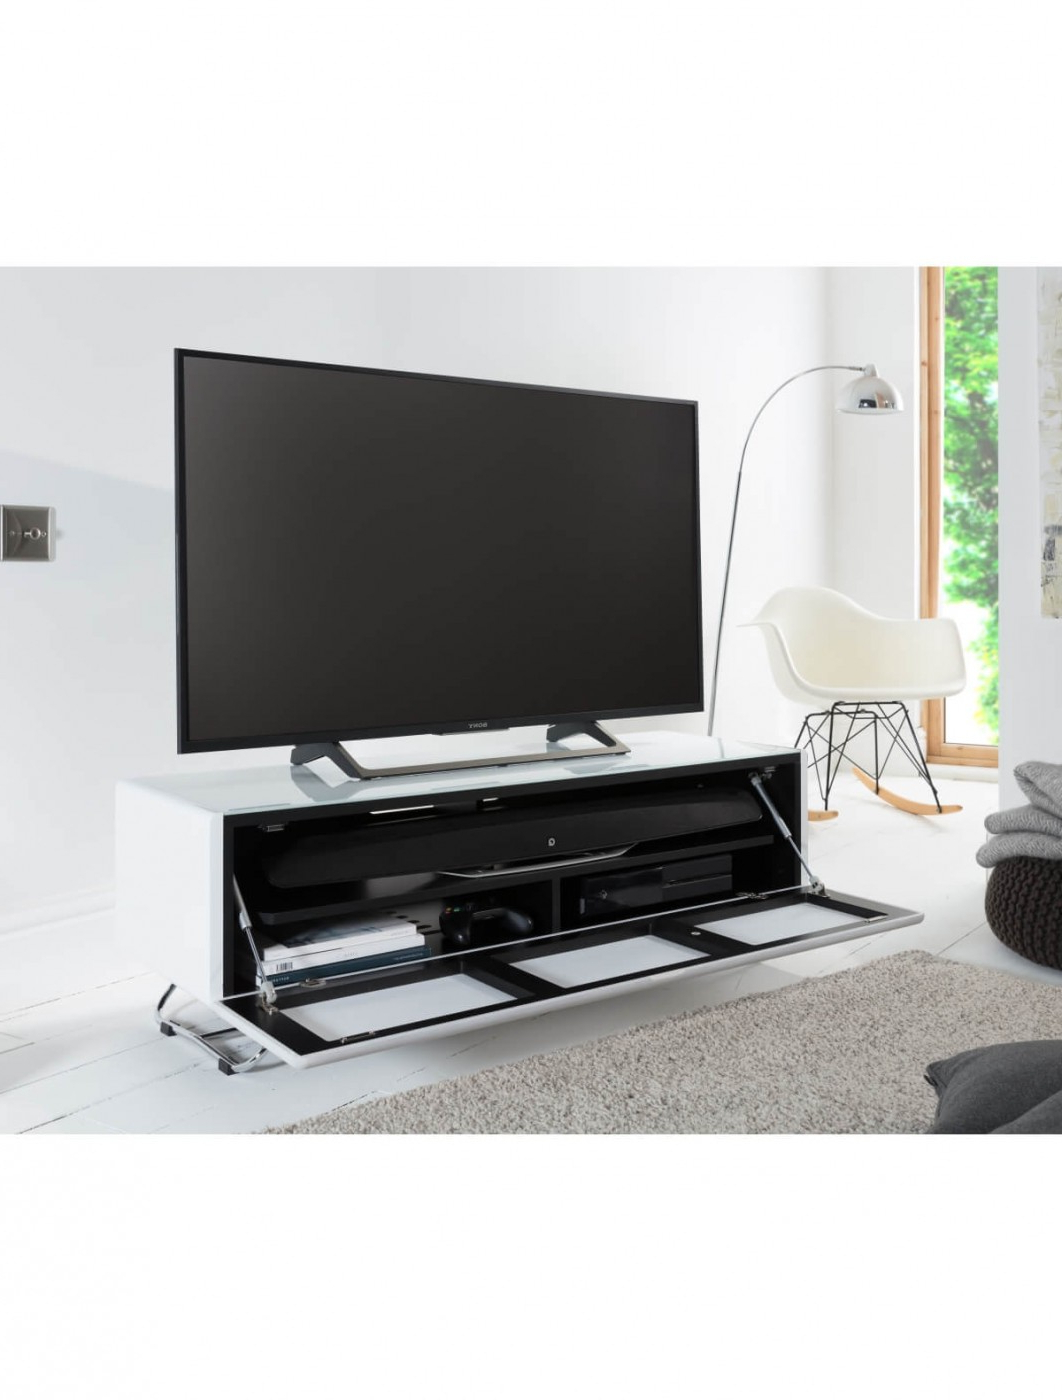 Tv Stand White Chromium Concept 1200mm Cro2 1200cpt Wh Pertaining To 57'' Tv Stands With Open Glass Shelves Gray & Black Finsh (View 5 of 20)